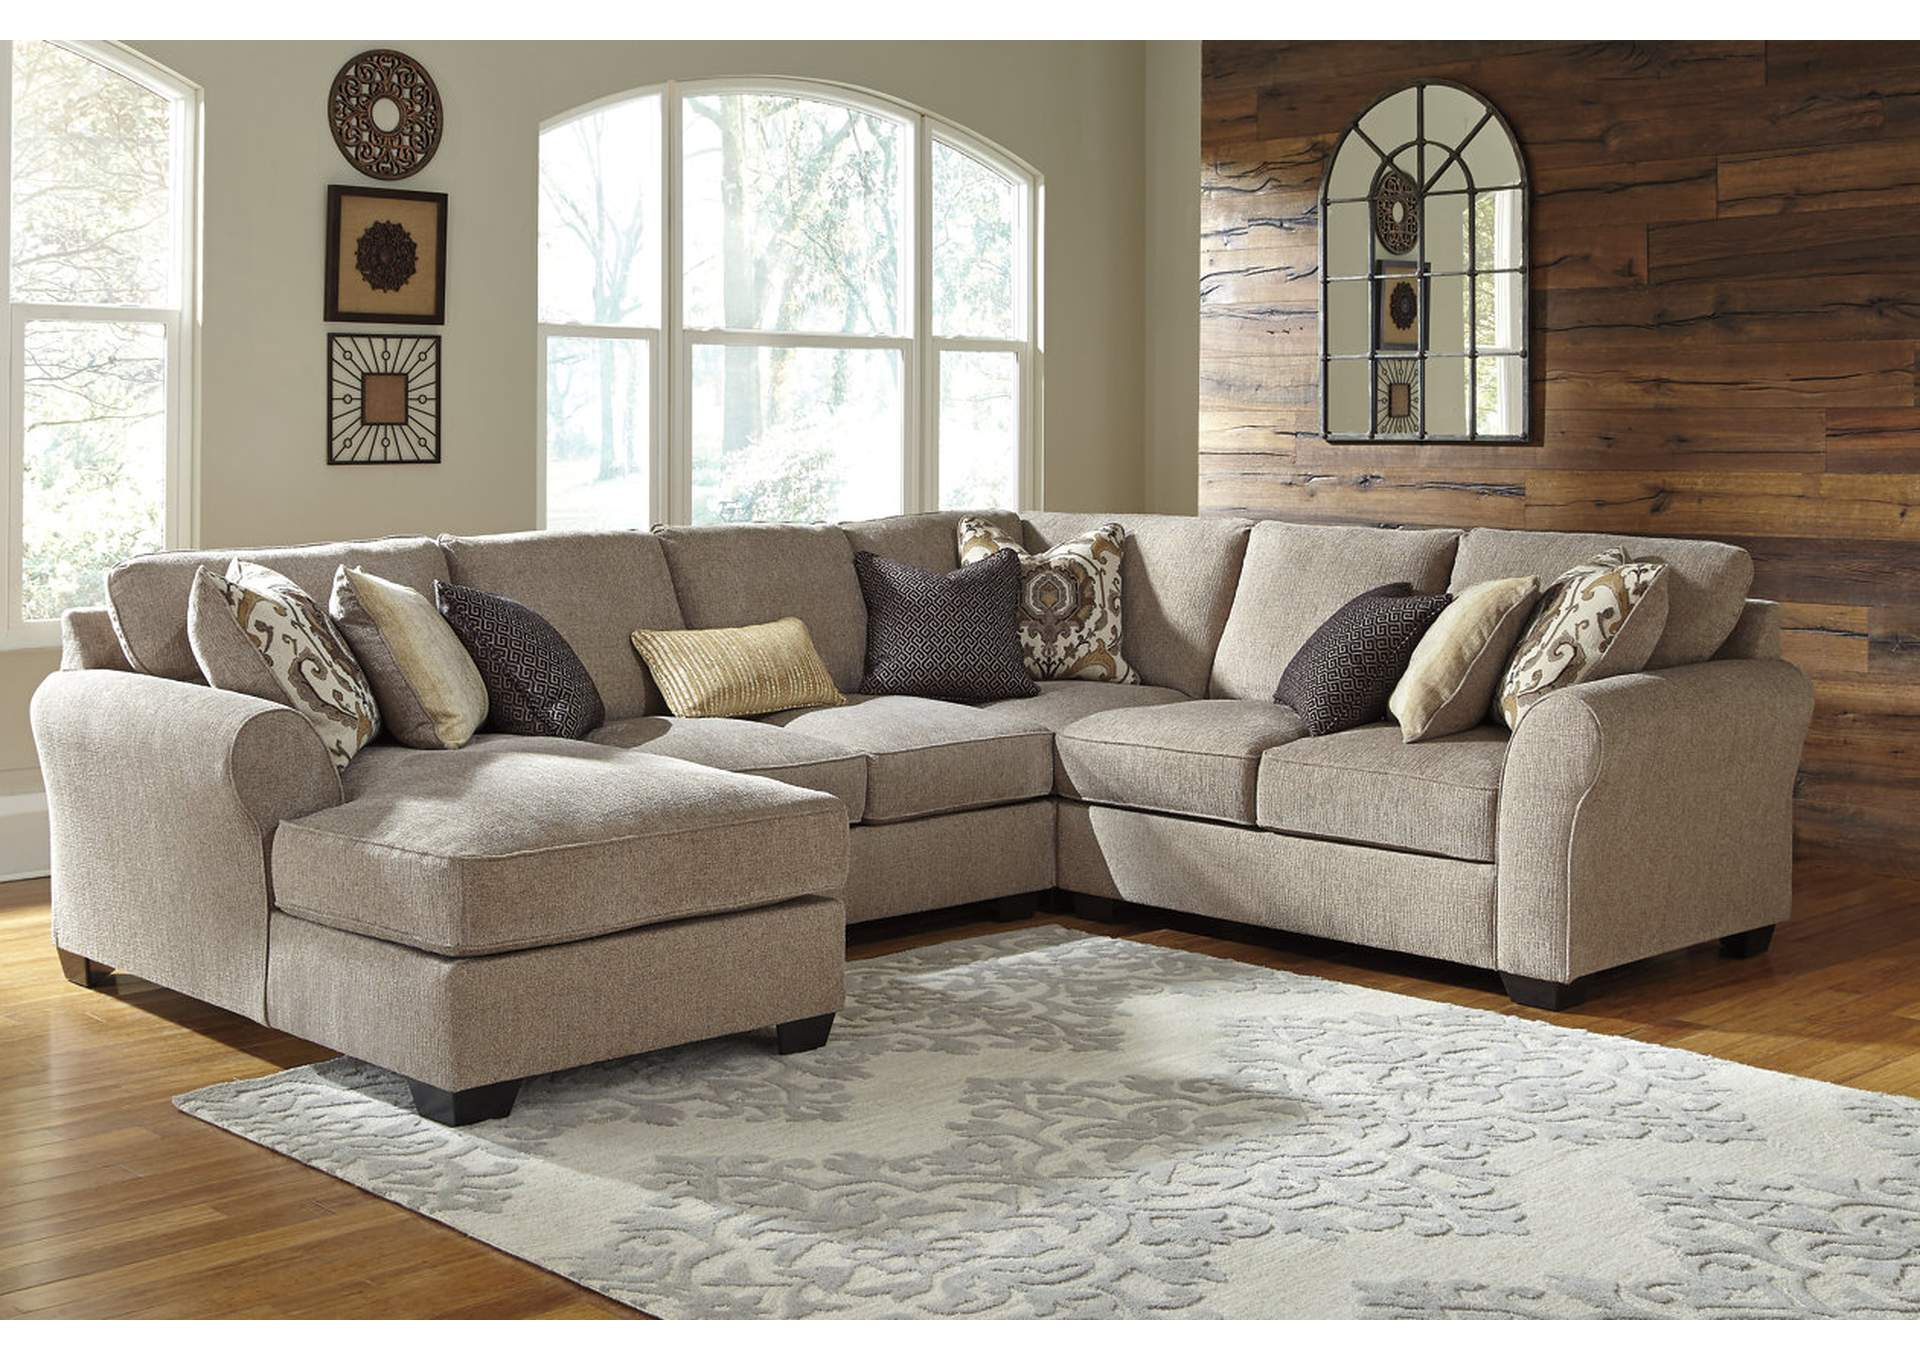 Pantomine Driftwood Laf Chaise Sectional The Furniture Shop Duncanville Tx